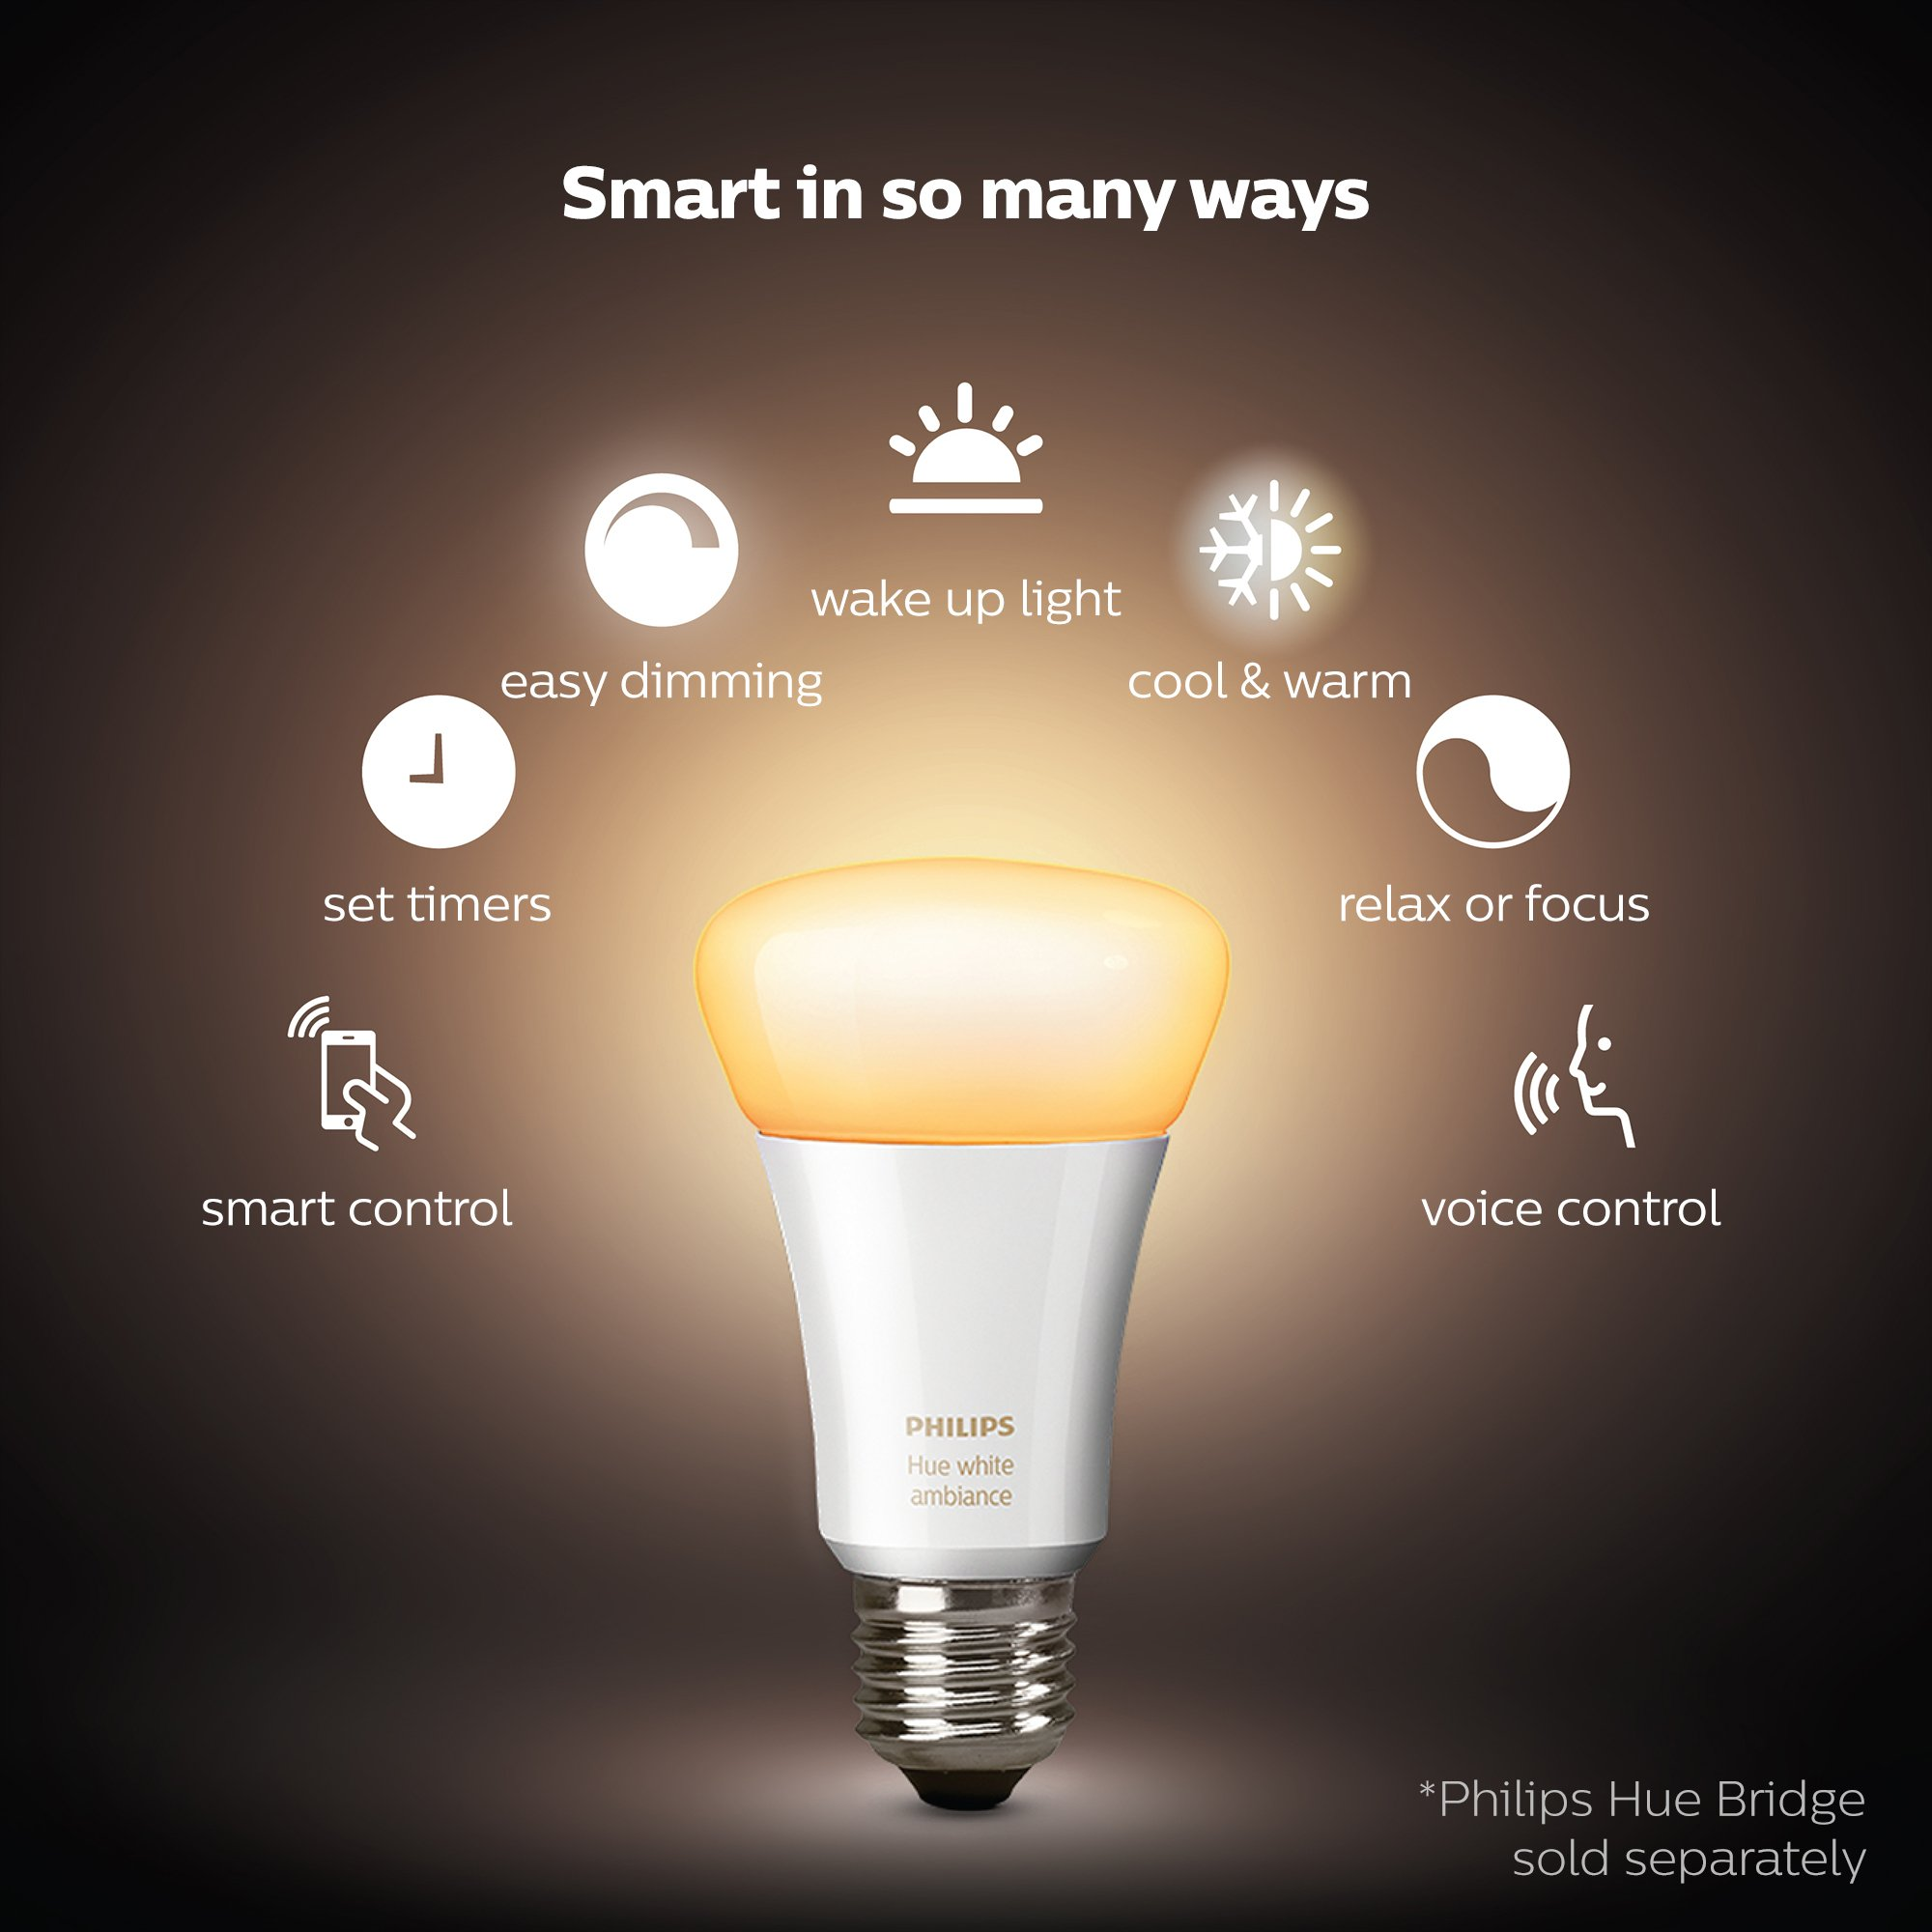 Philips Hue 2-Pack White Ambiance 60W Equivalent Dimmable LED Smart Bulb (Works with Alexa Apple Homekit and Google Assistant) by Philips Hue (Image #2)